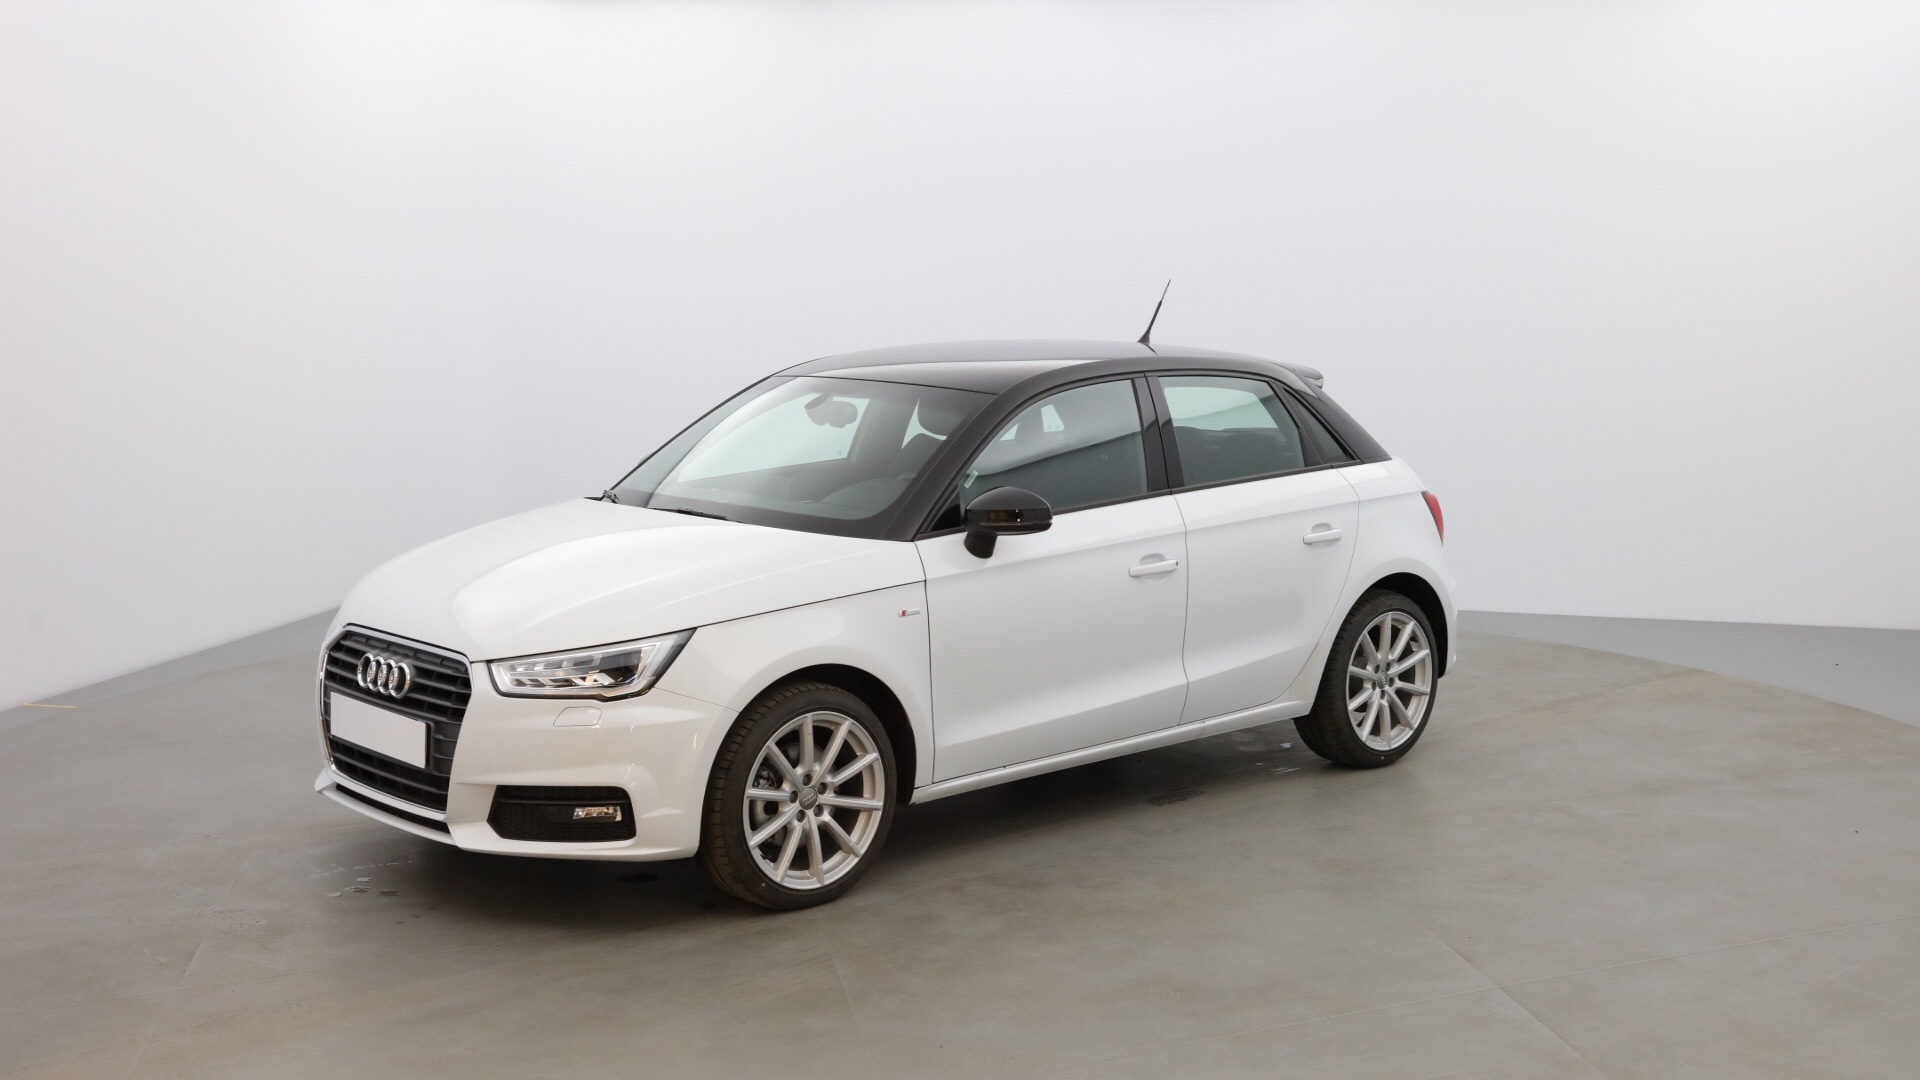 achat en ligne audi a1 sportback 1 6 tdi 116ch s line occasion berline manuelle 18 143 km. Black Bedroom Furniture Sets. Home Design Ideas